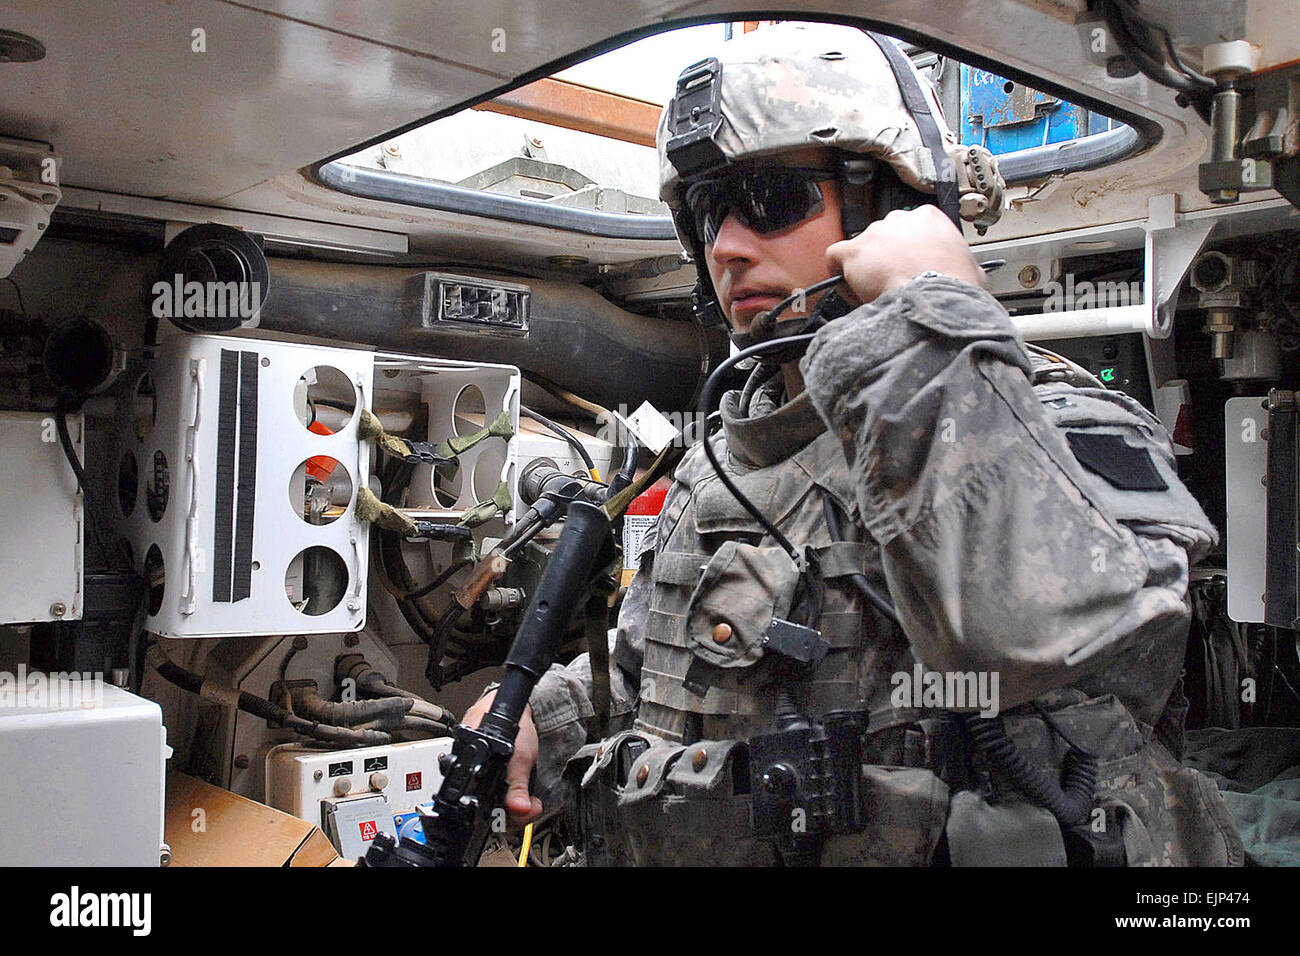 U.S. Army Staff Sgt. Bert Finland checks his headset radio in a   Stryker vehicle before patrolling in Taji, north - Stock Image